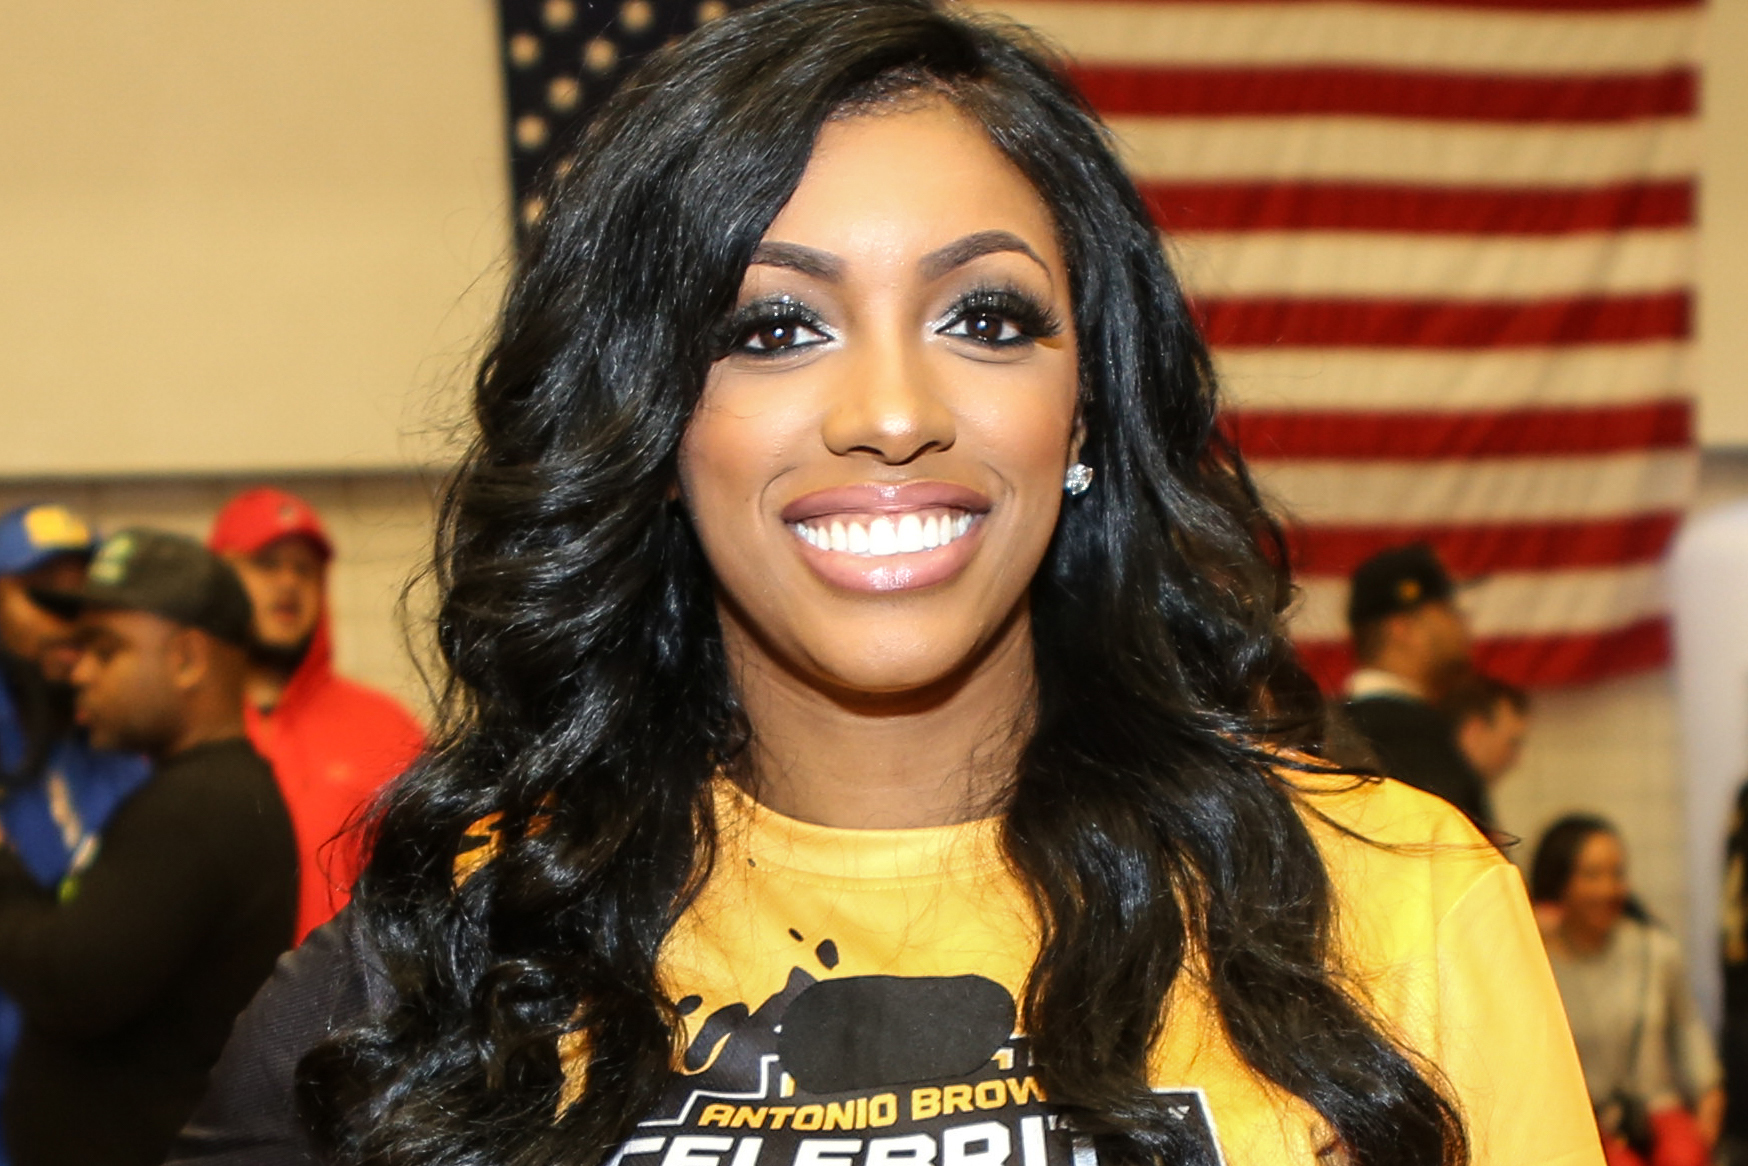 Porsha Williams Forgets All About Feuds And Gives A Shoutout Shoutout To All Her 'Fellow Black Movers And Shakers Of 2018'